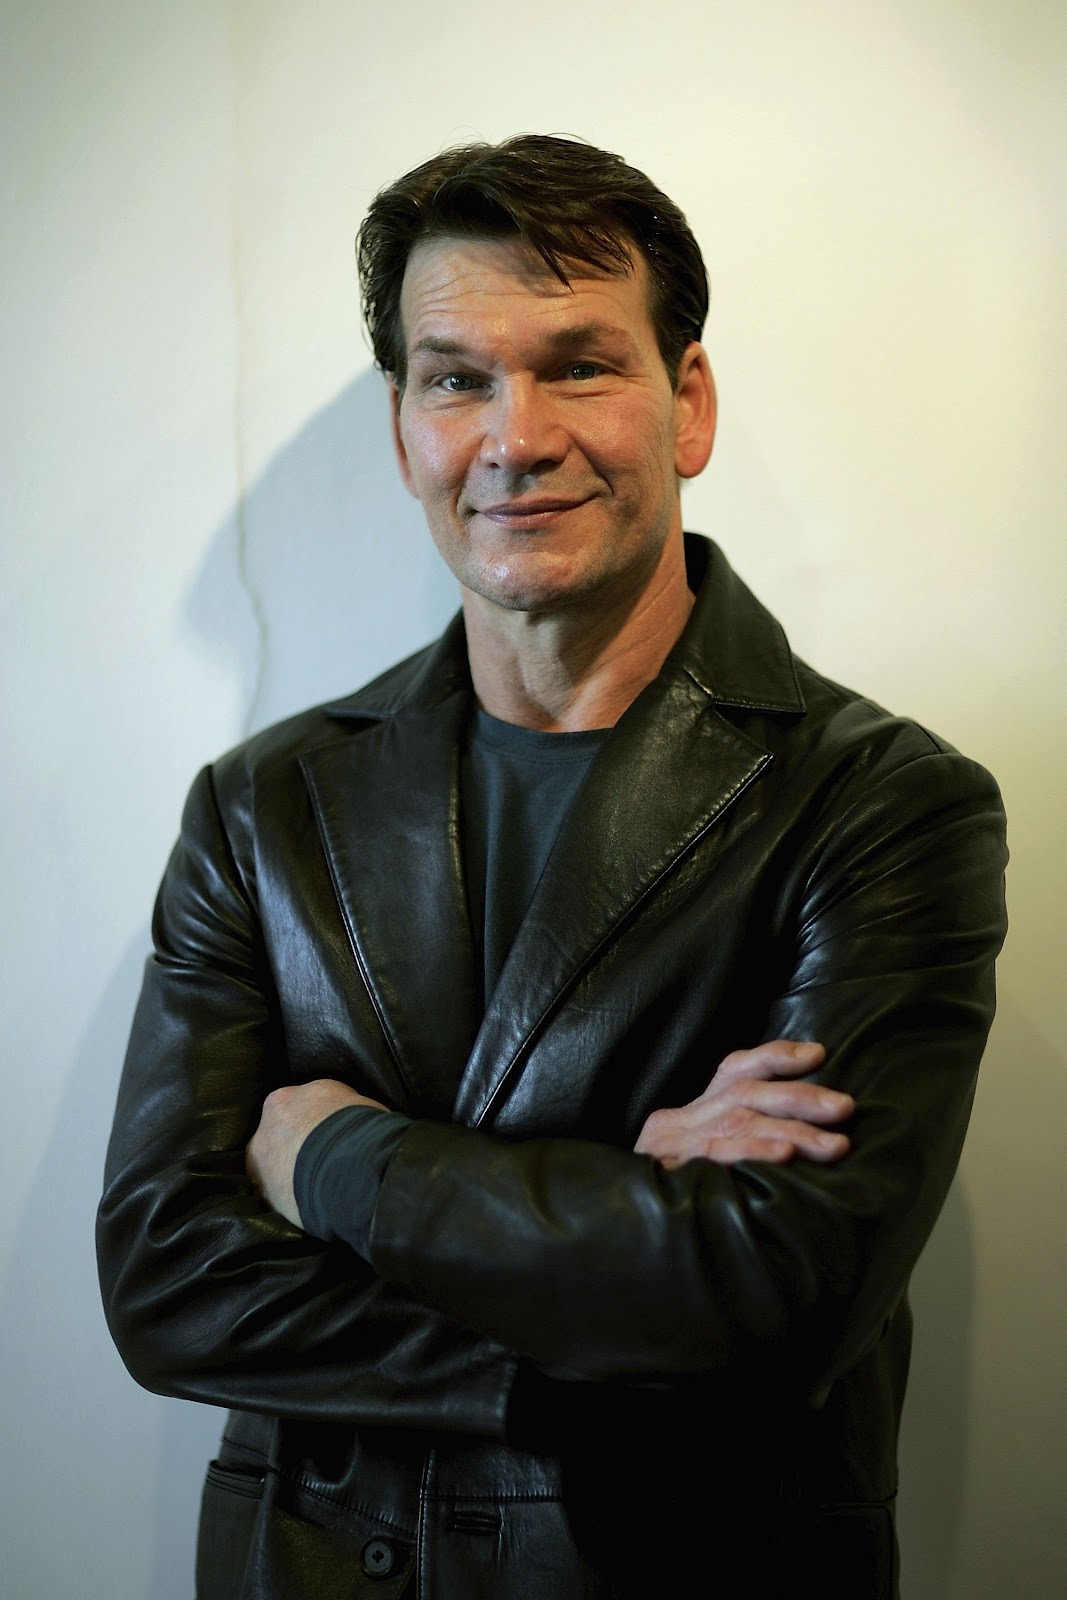 Carroll Bryant: Influences: Patrick Swayze